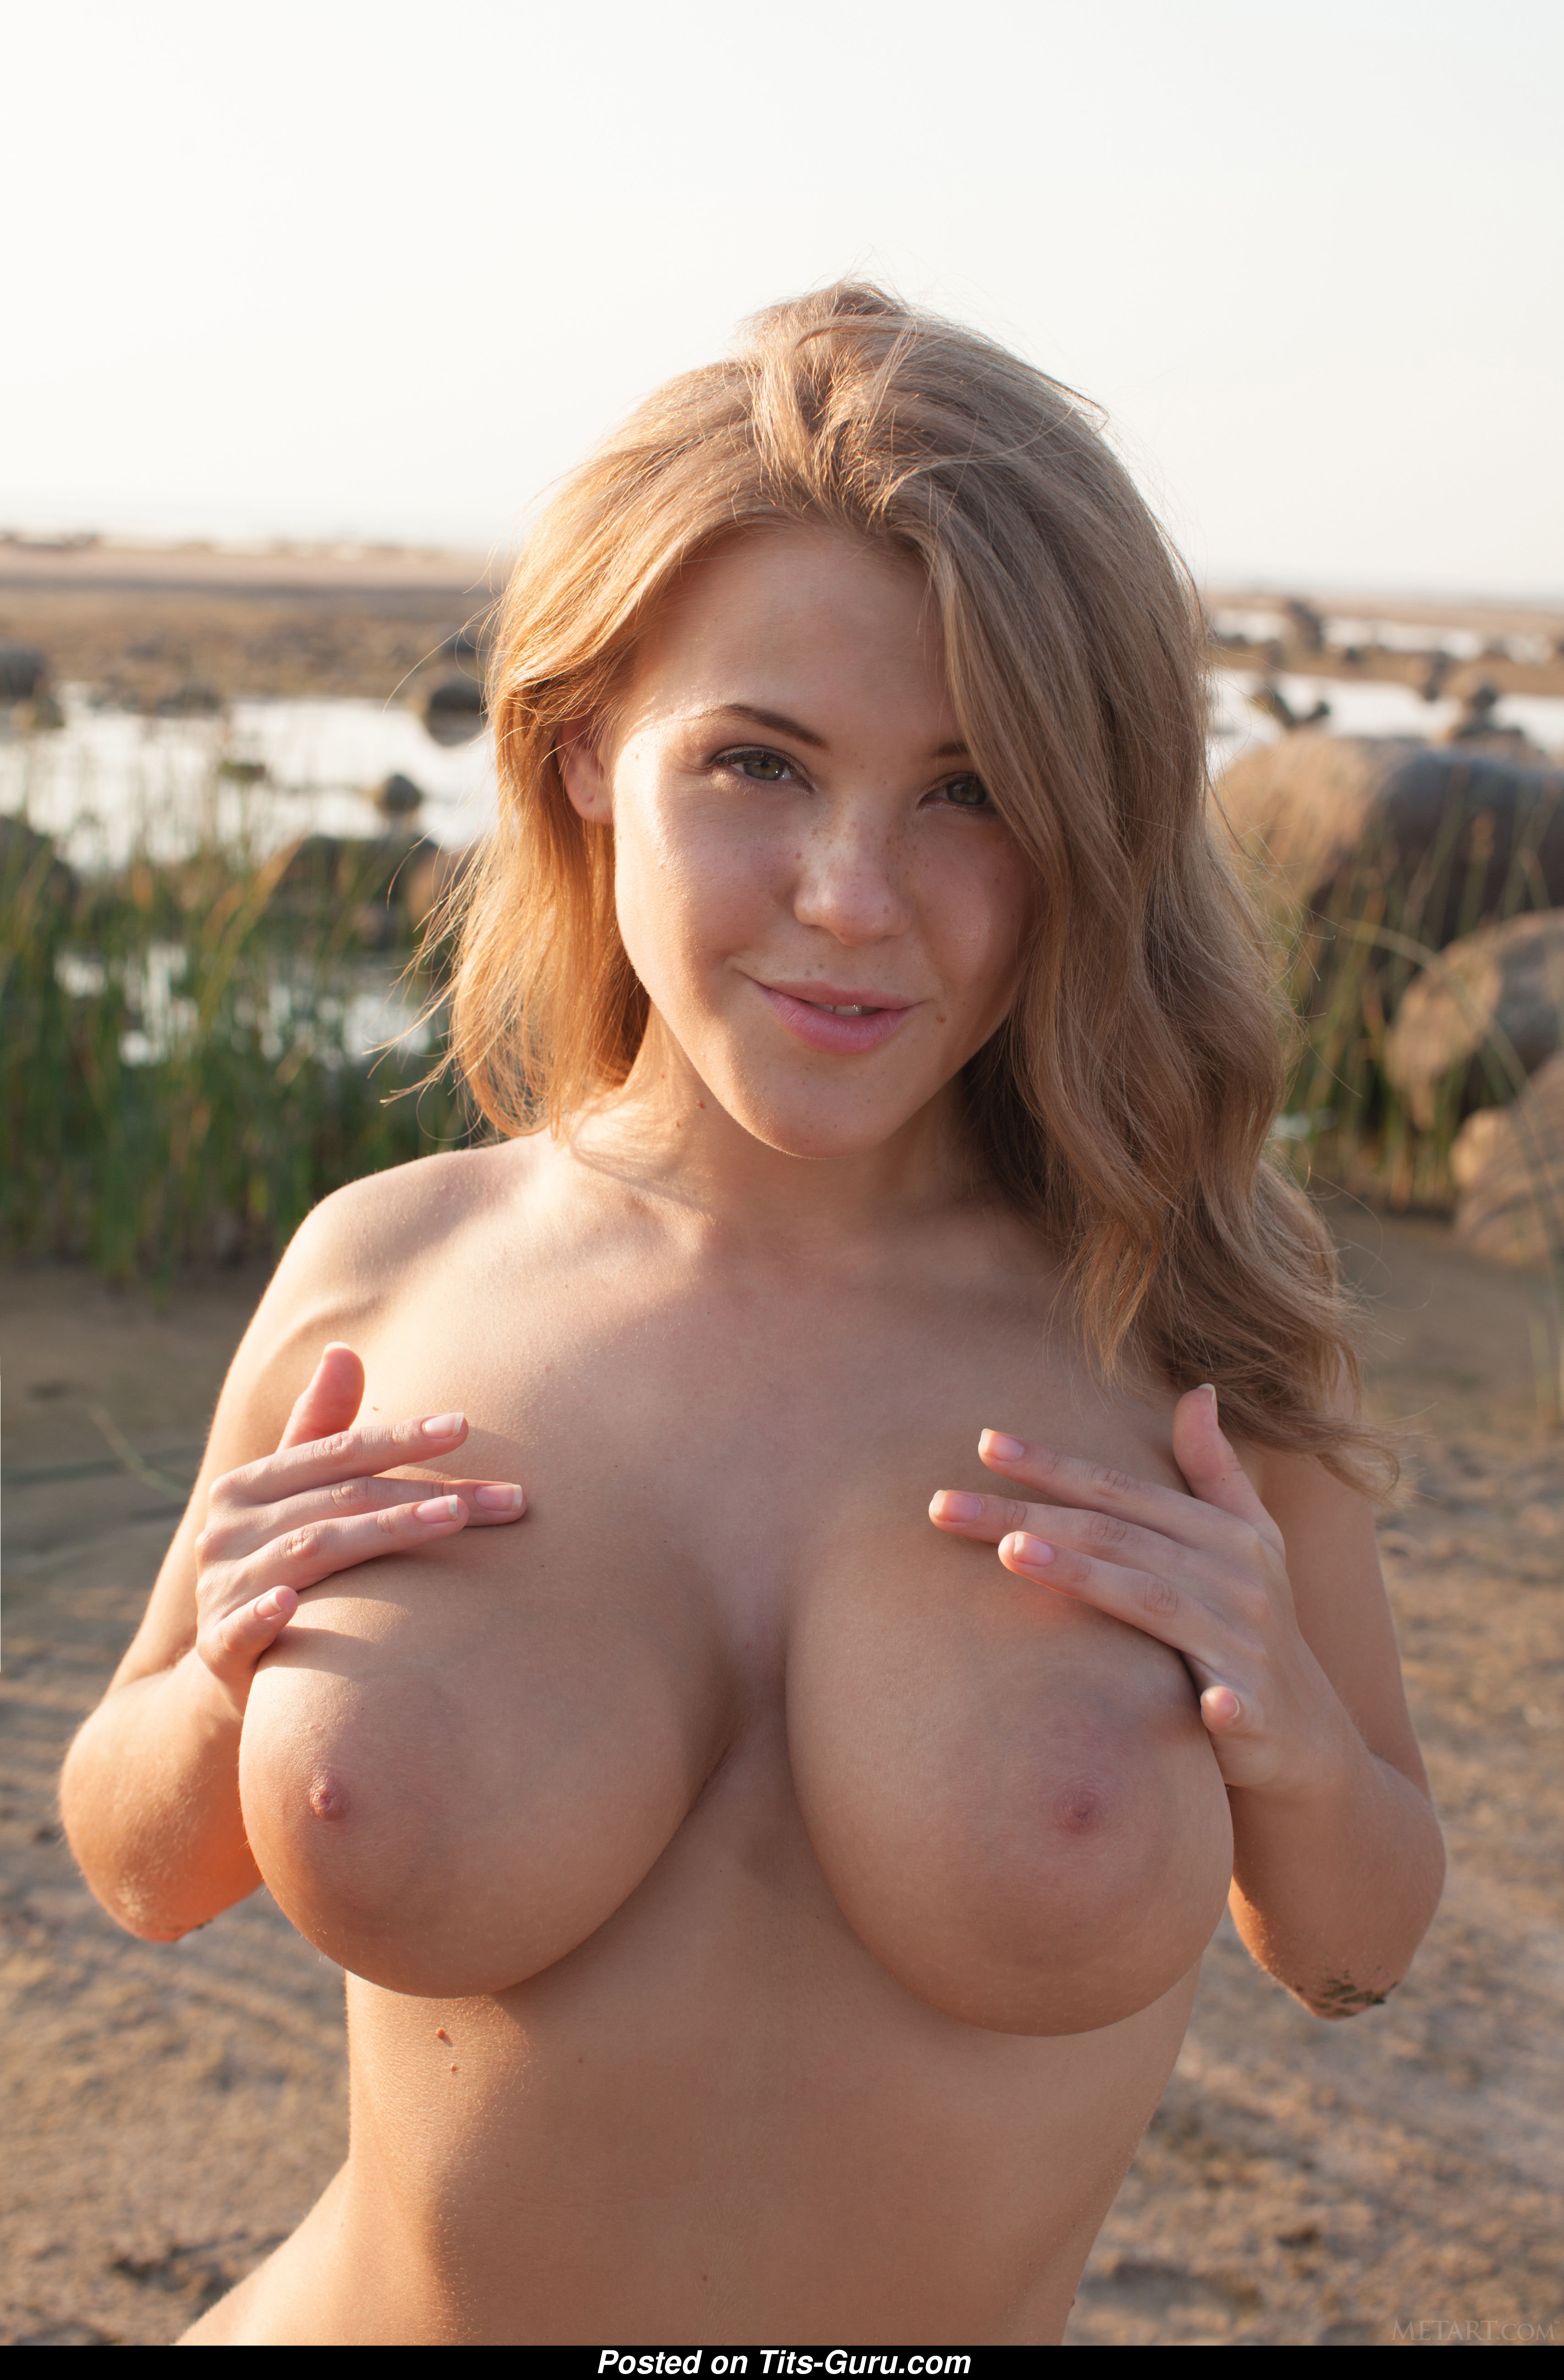 Forum on this topic: Disney lindsay lohans breasts are too big, viola-bailey-boobs/